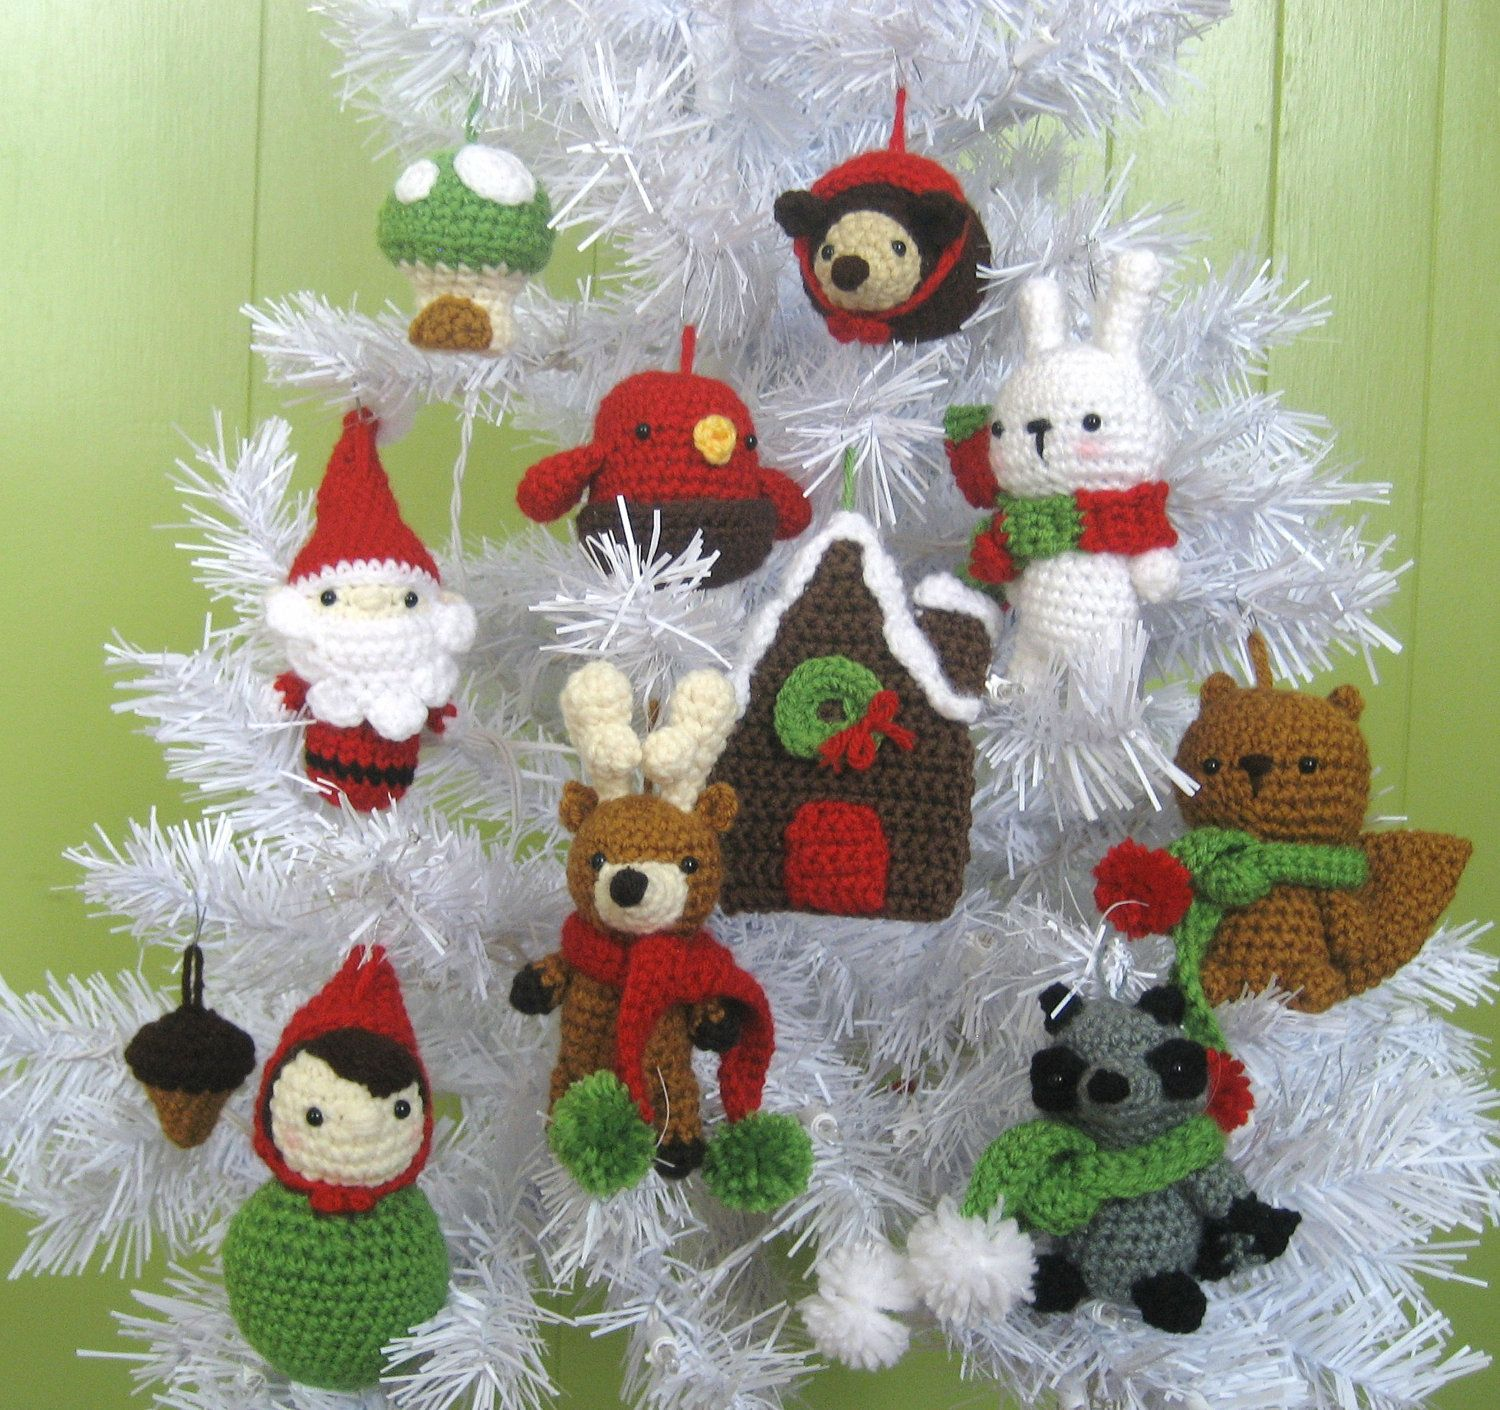 Crochet Pattern Central - Free Ornaments Crochet Pattern Link Crochet para ...